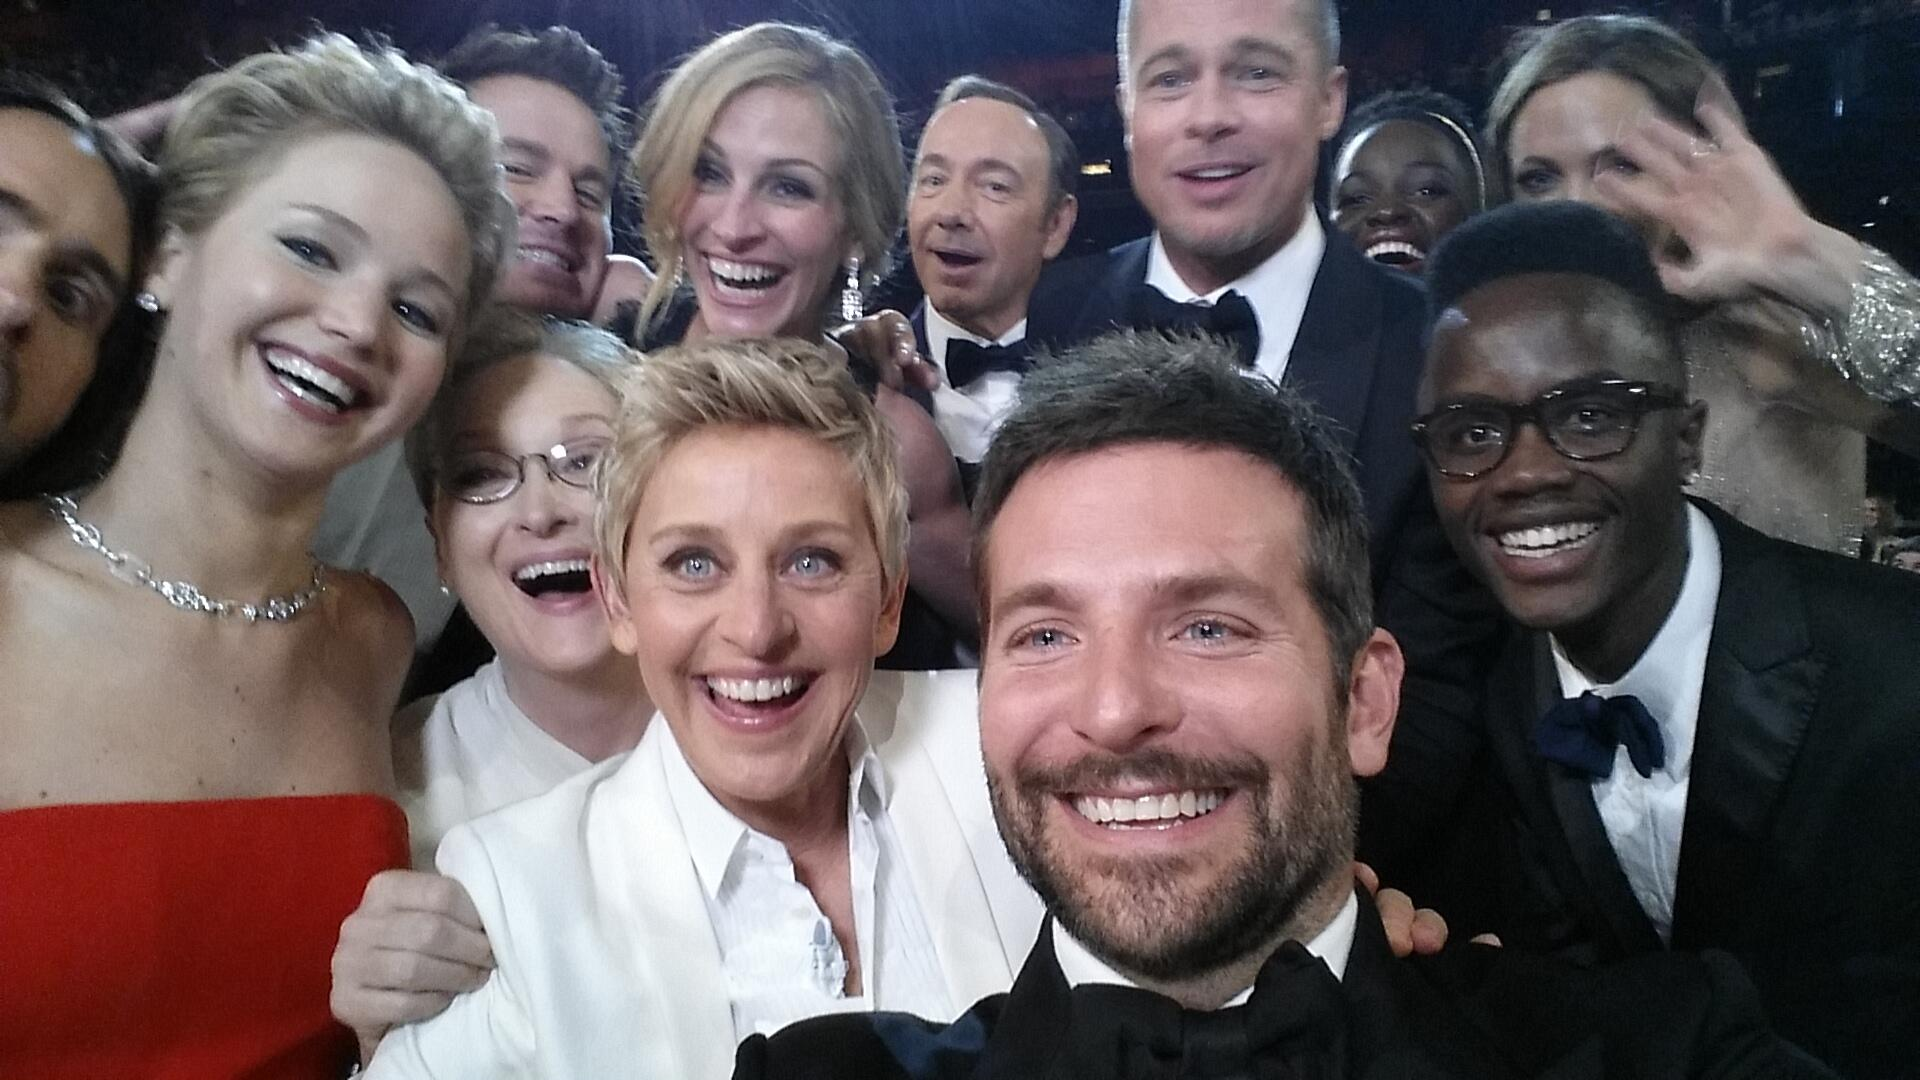 How on earth did Iain Duncan Smith manage to get in to @TheEllenShow's Oscar selfie? http://t.co/YB2ZUhaNv0